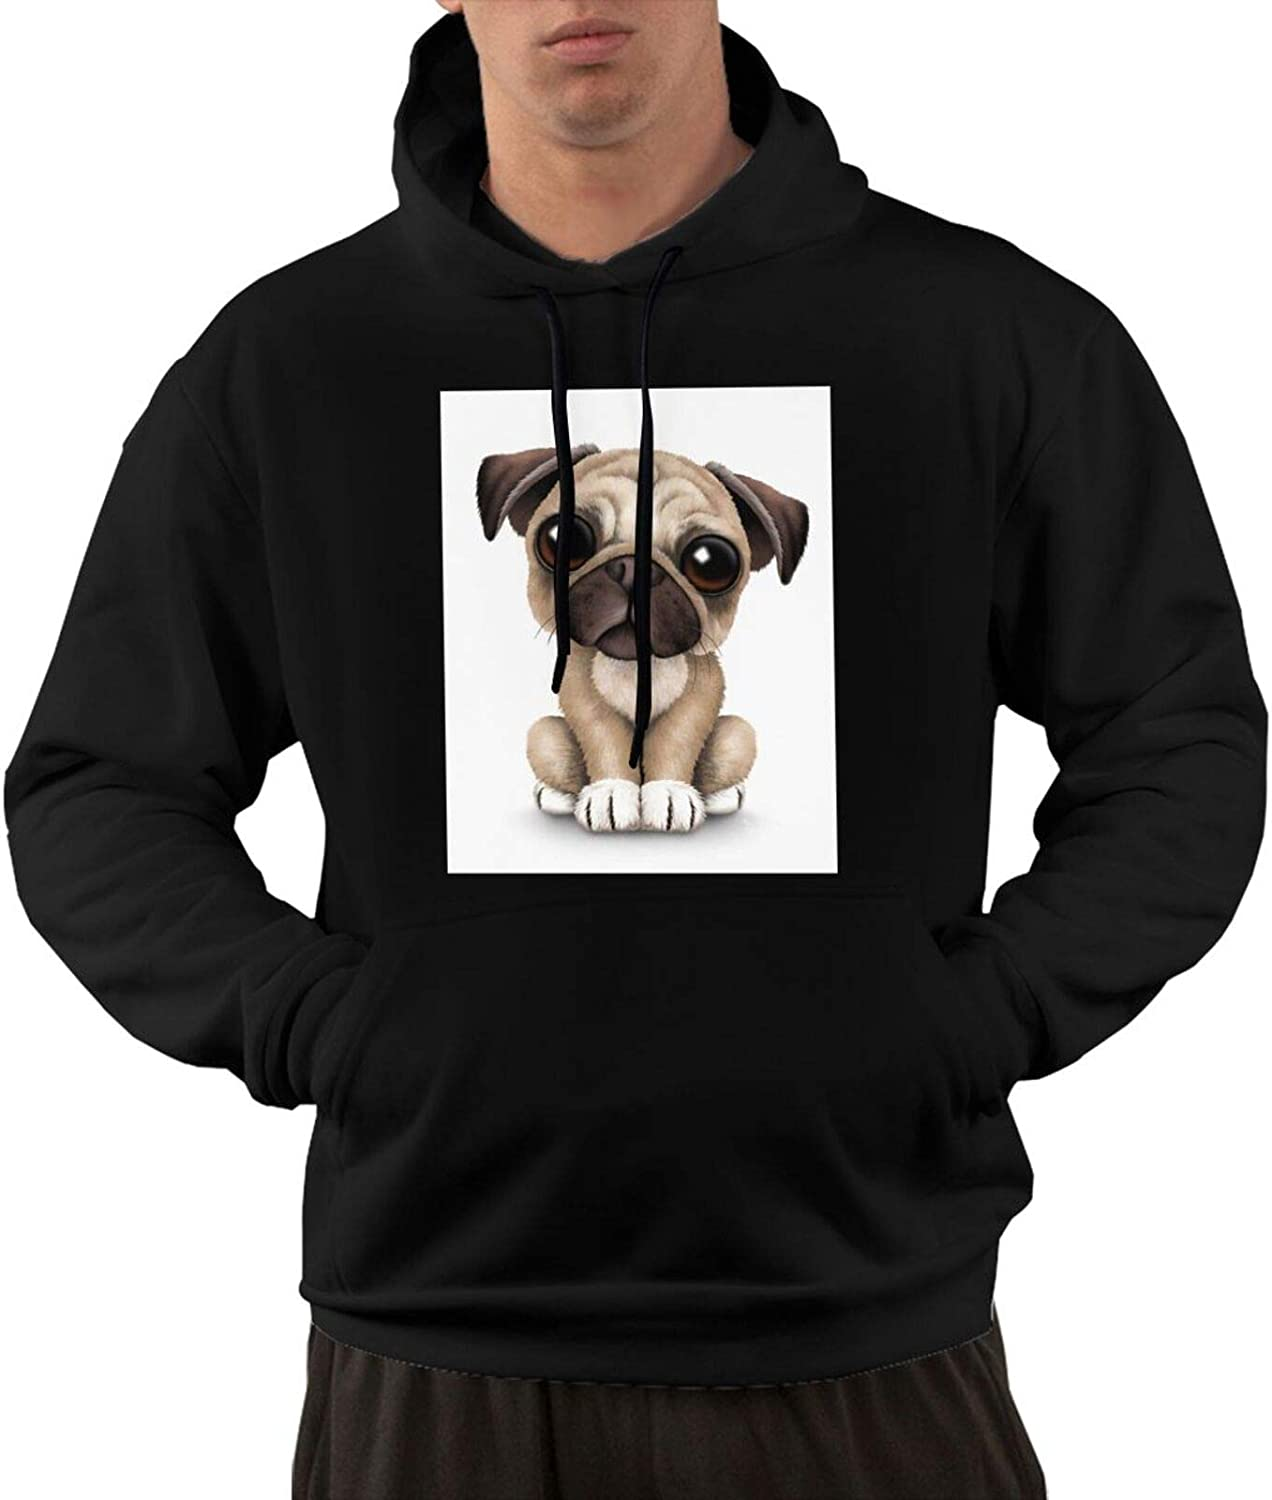 Cute Puppy Dog Sales for sale With Big Eyes Hooded Men'S Funny Award-winning store And Sweat Pocket